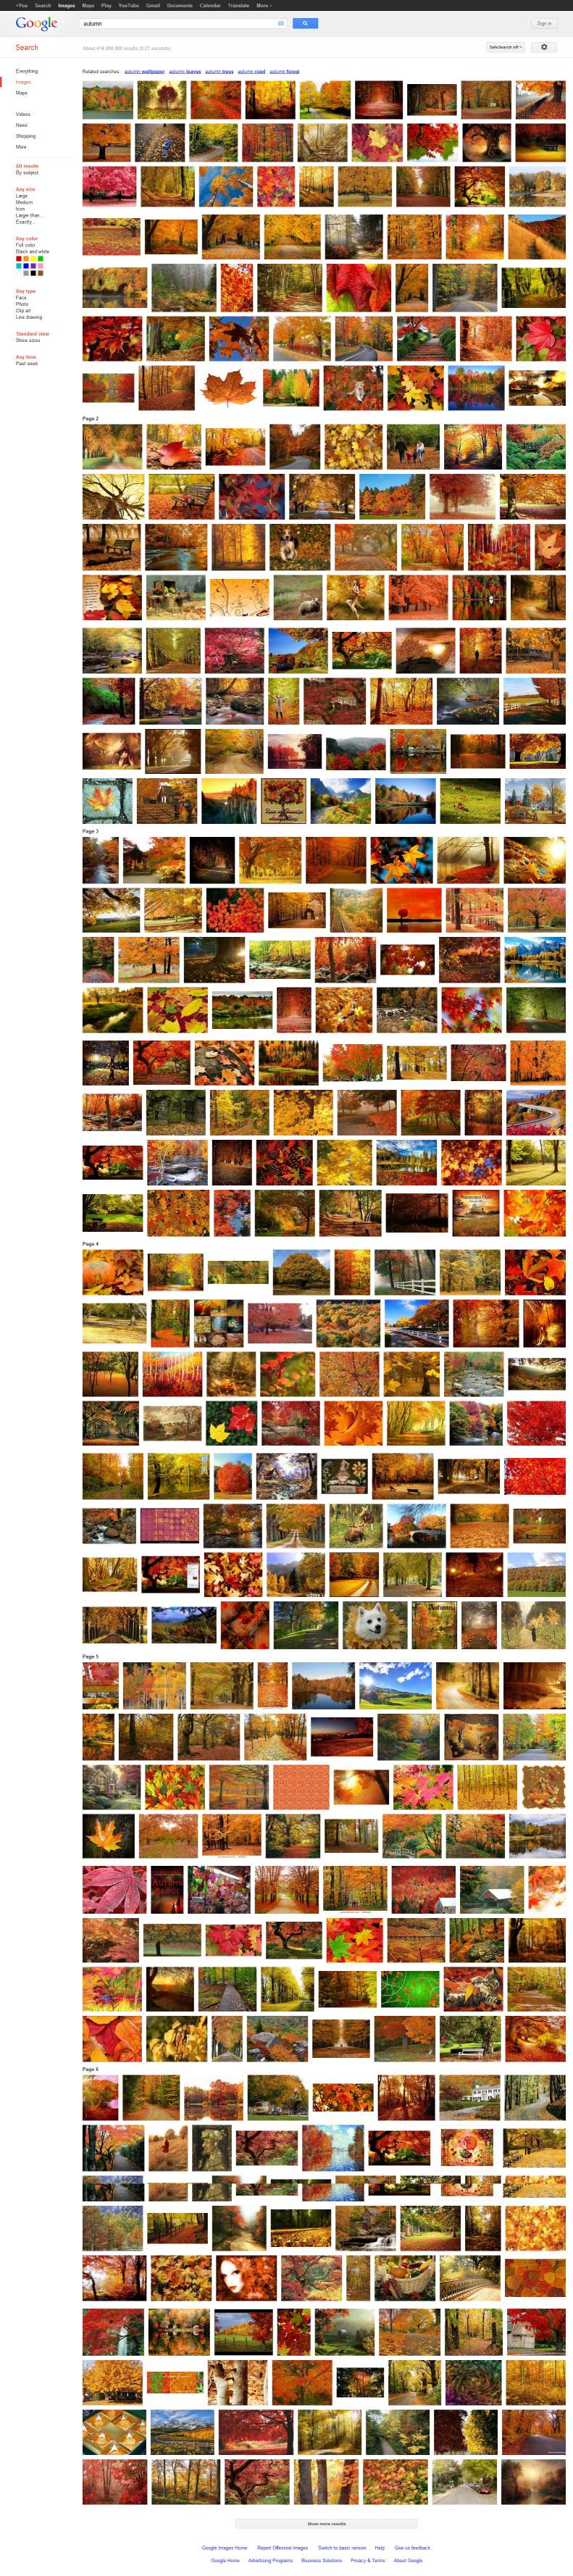 google-autumn-en-2012-50